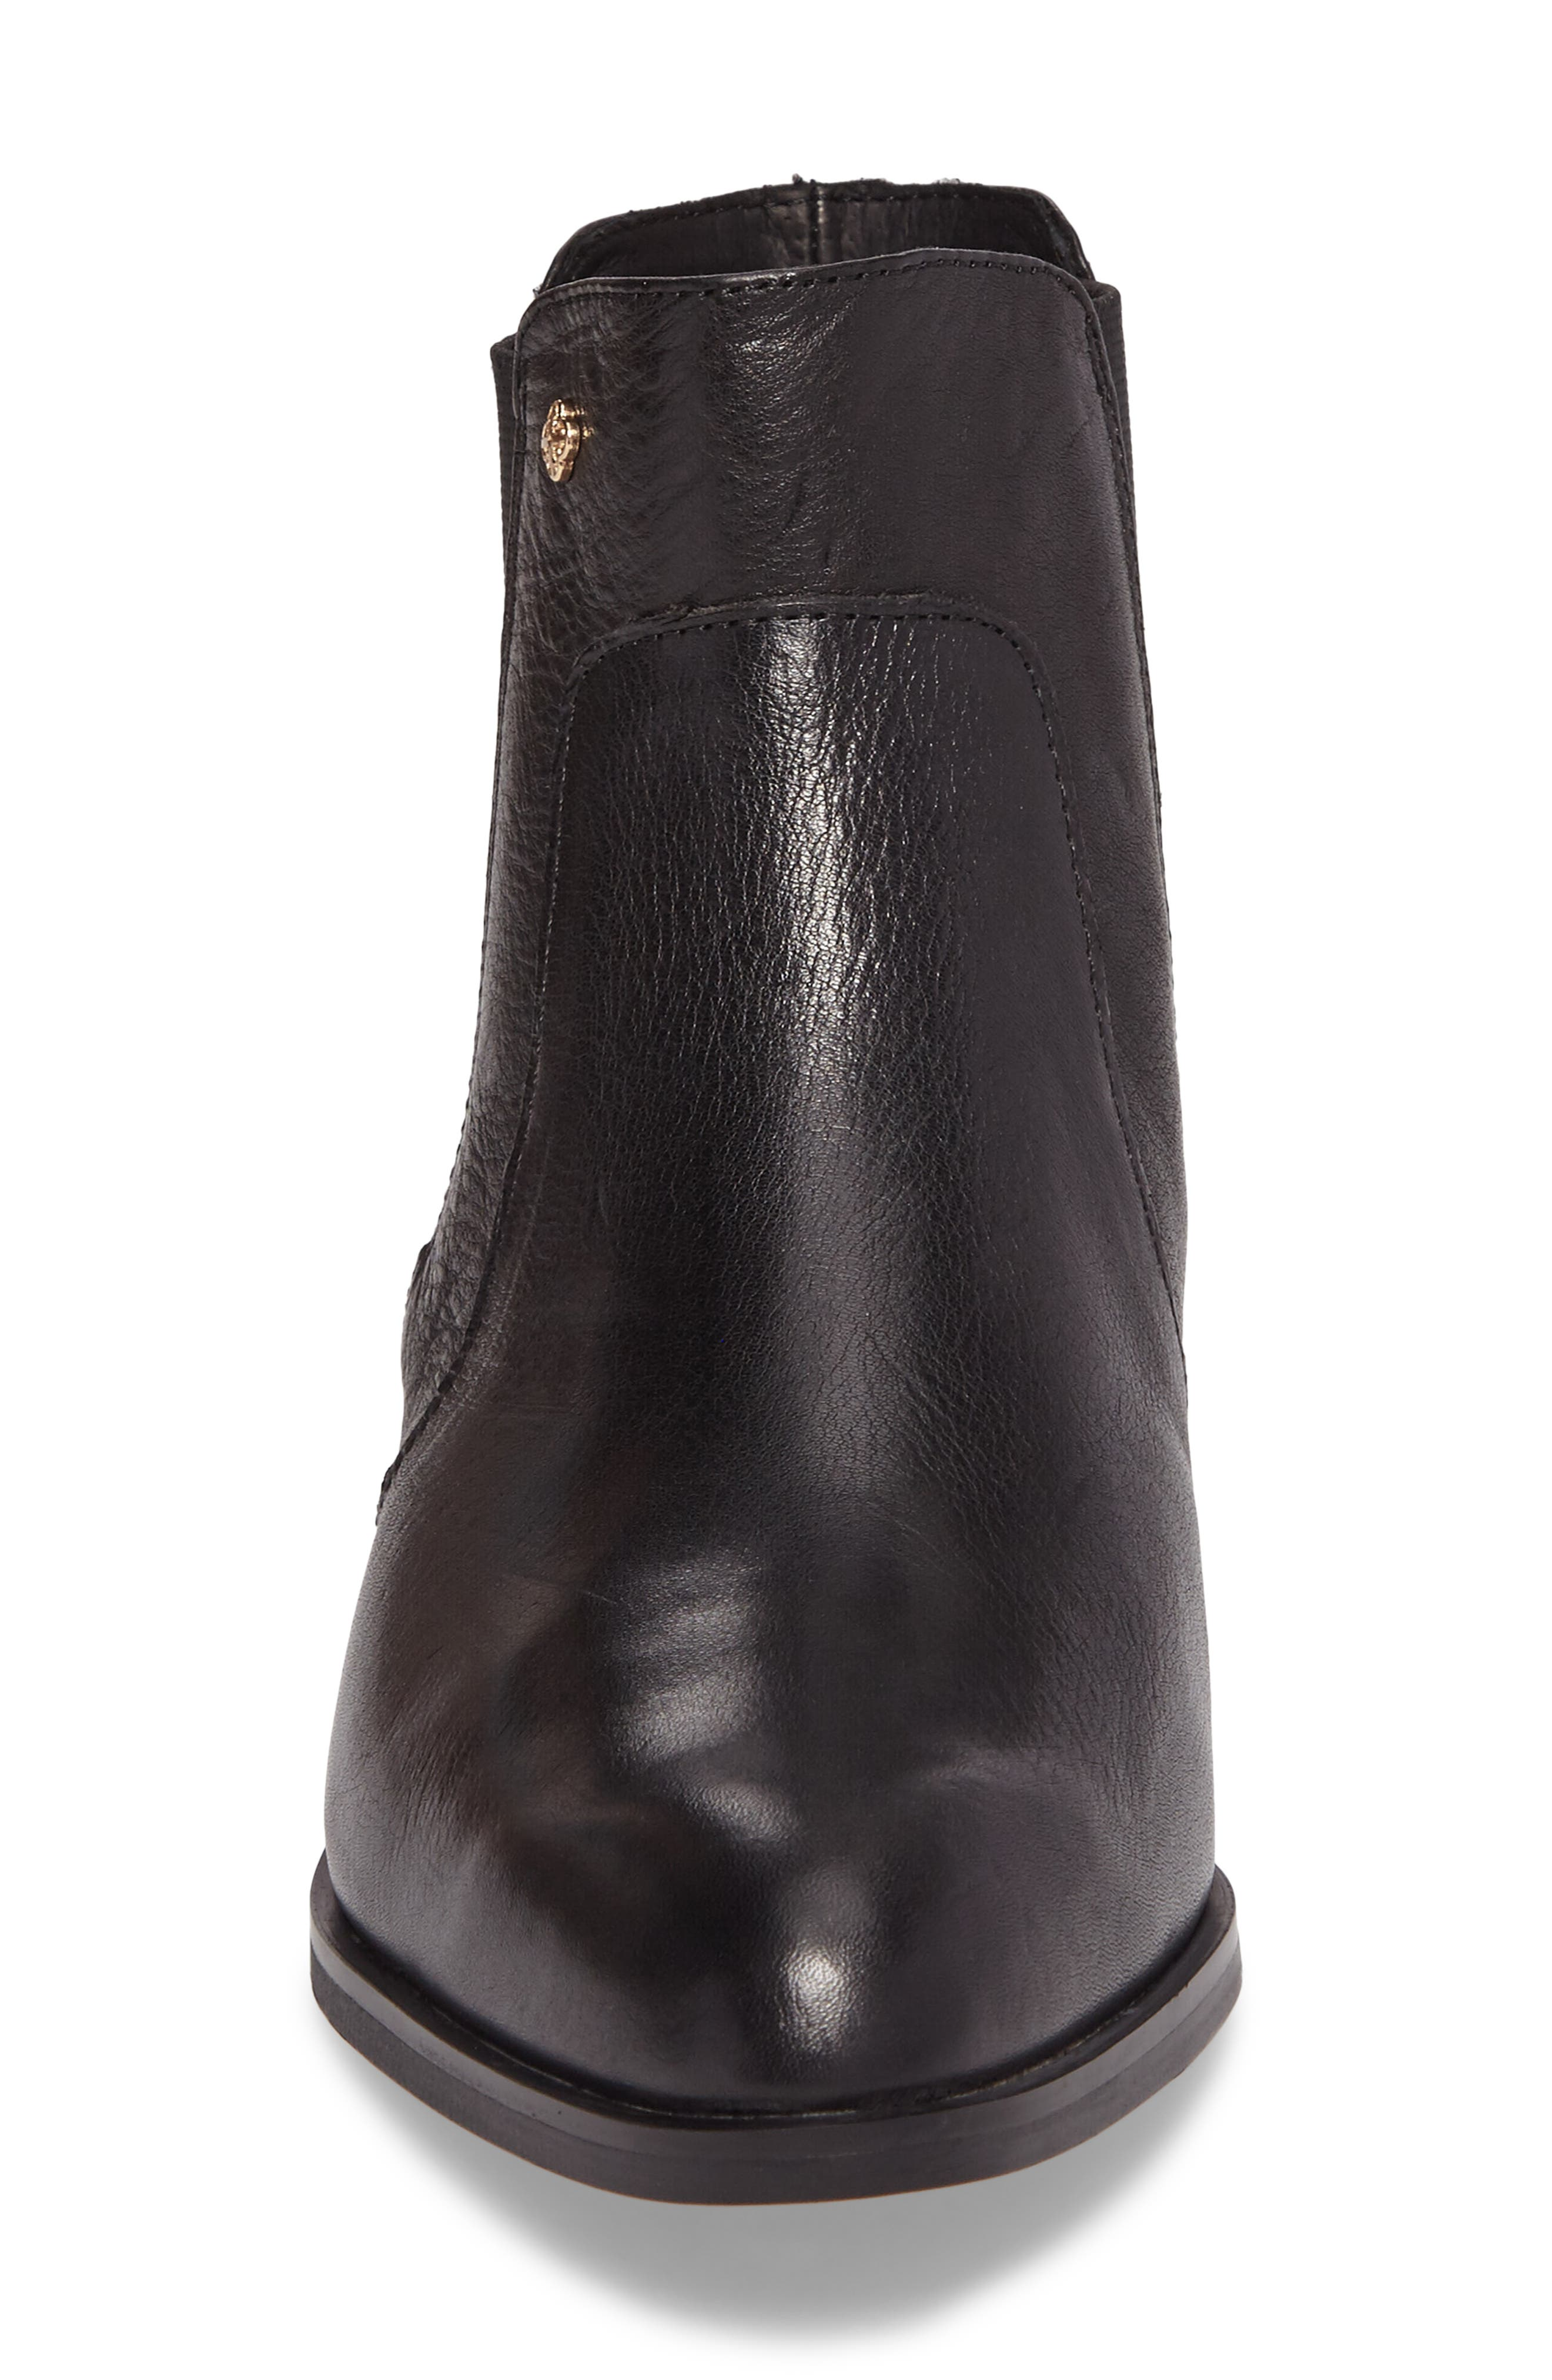 ISOLÁ, Mora Bootie, Alternate thumbnail 4, color, BLACK LEATHER